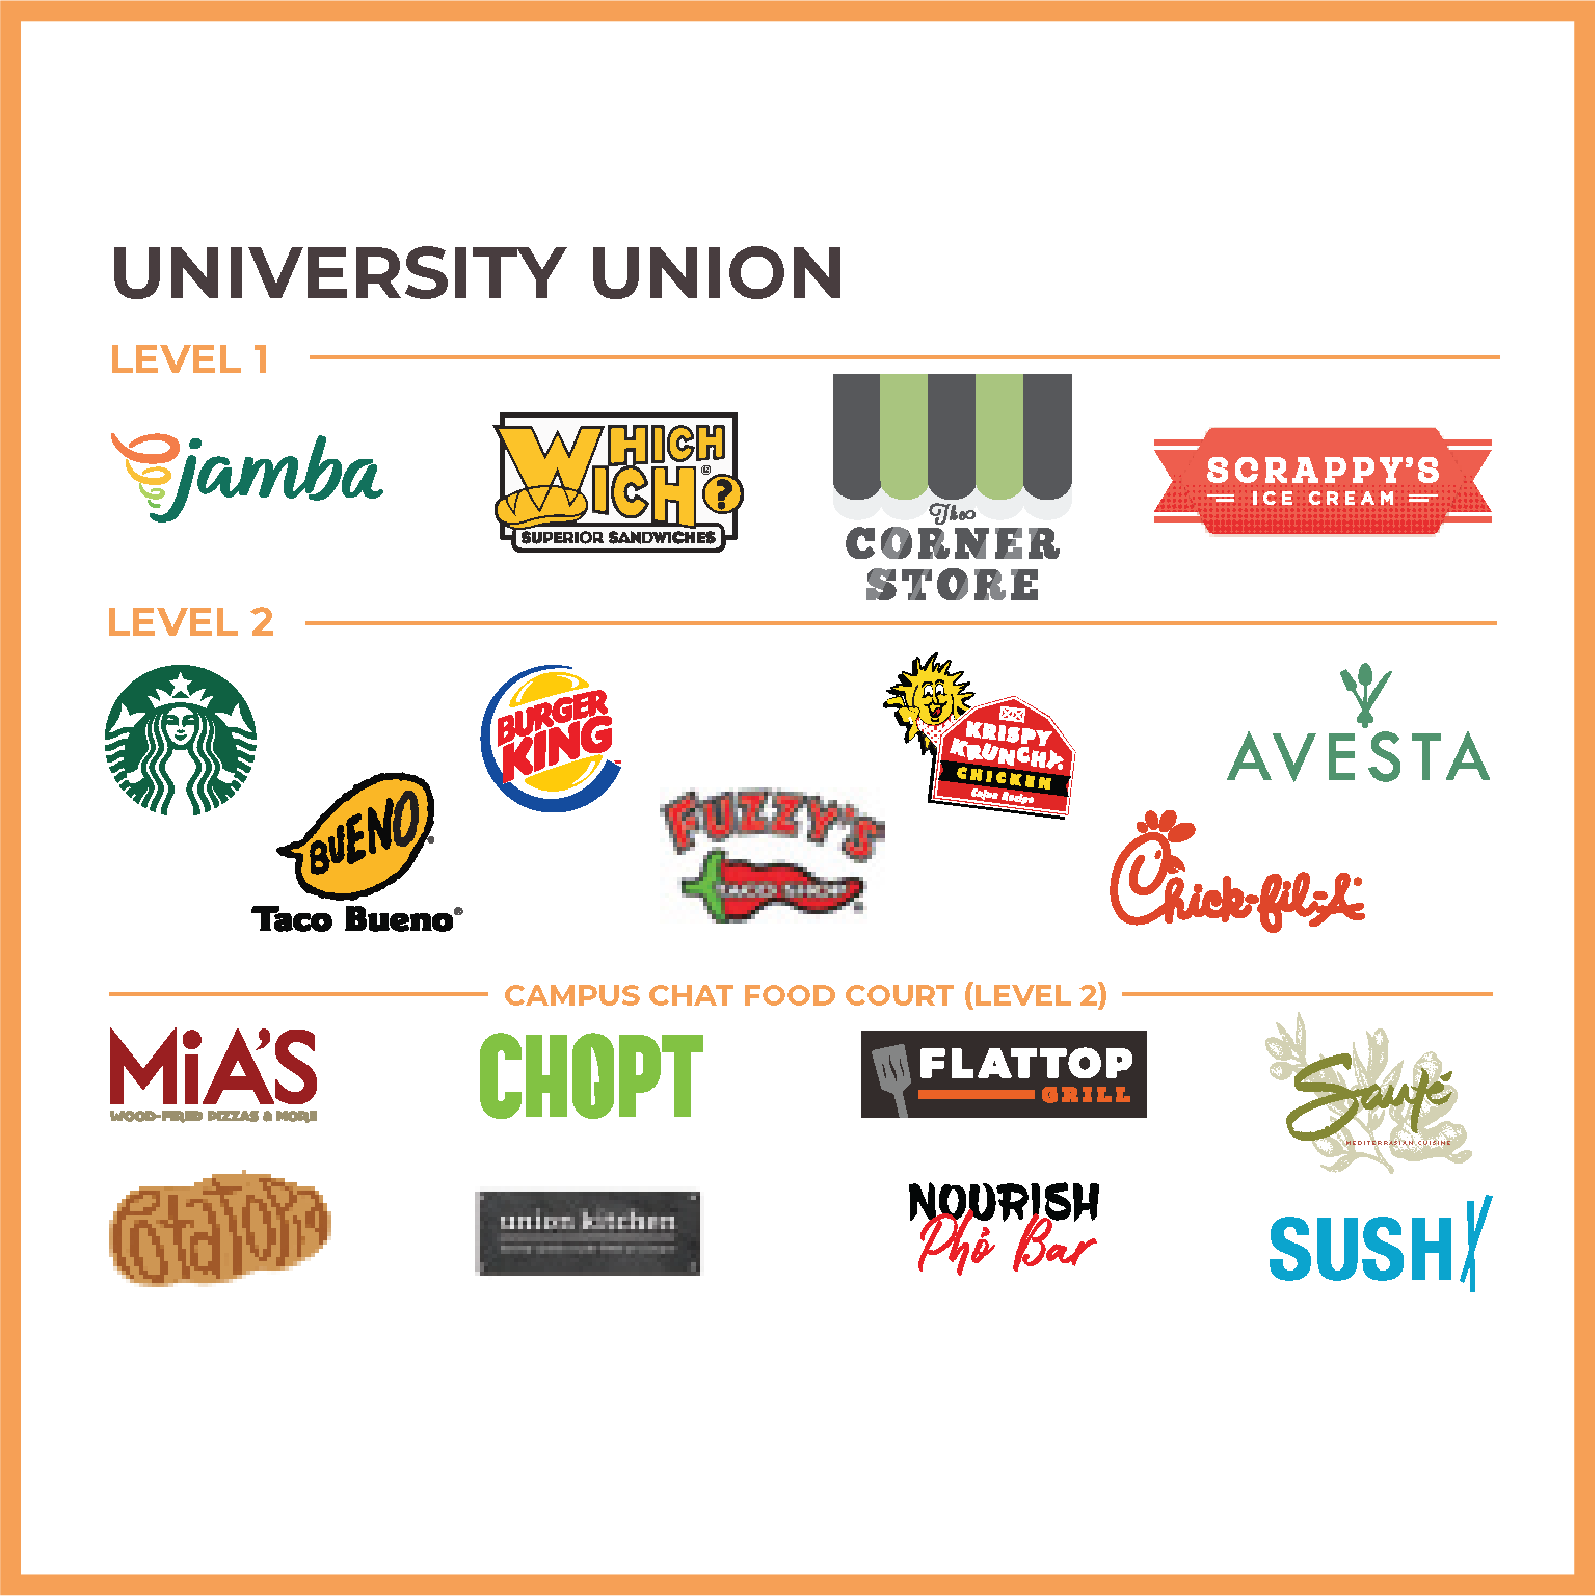 link to retail dining in the university union